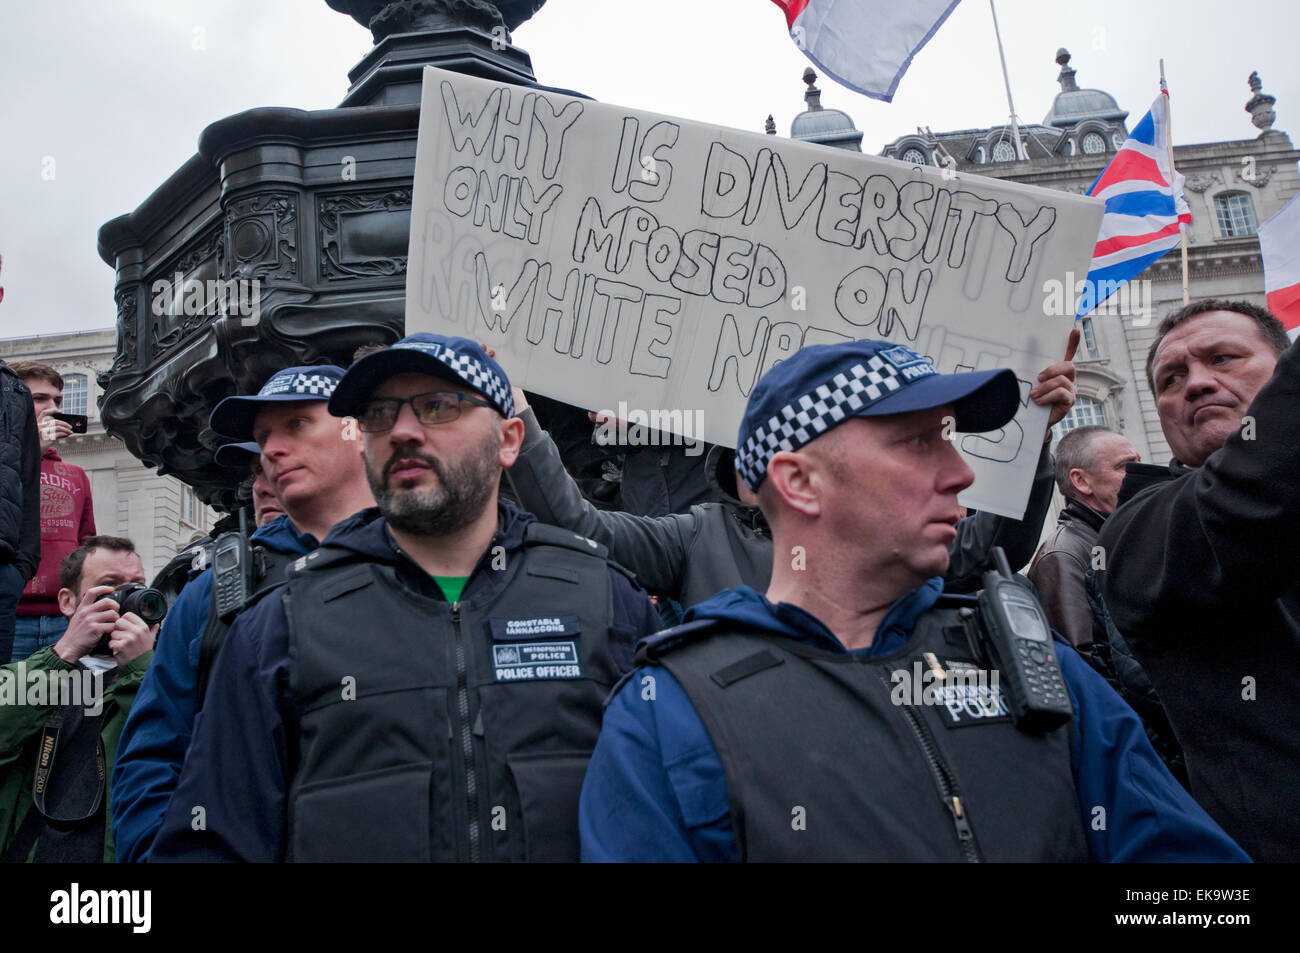 Police surround group from Britain First as they try to disrupt  UN Anti-Racism Day protesting Racism, Fascism, - Stock Image